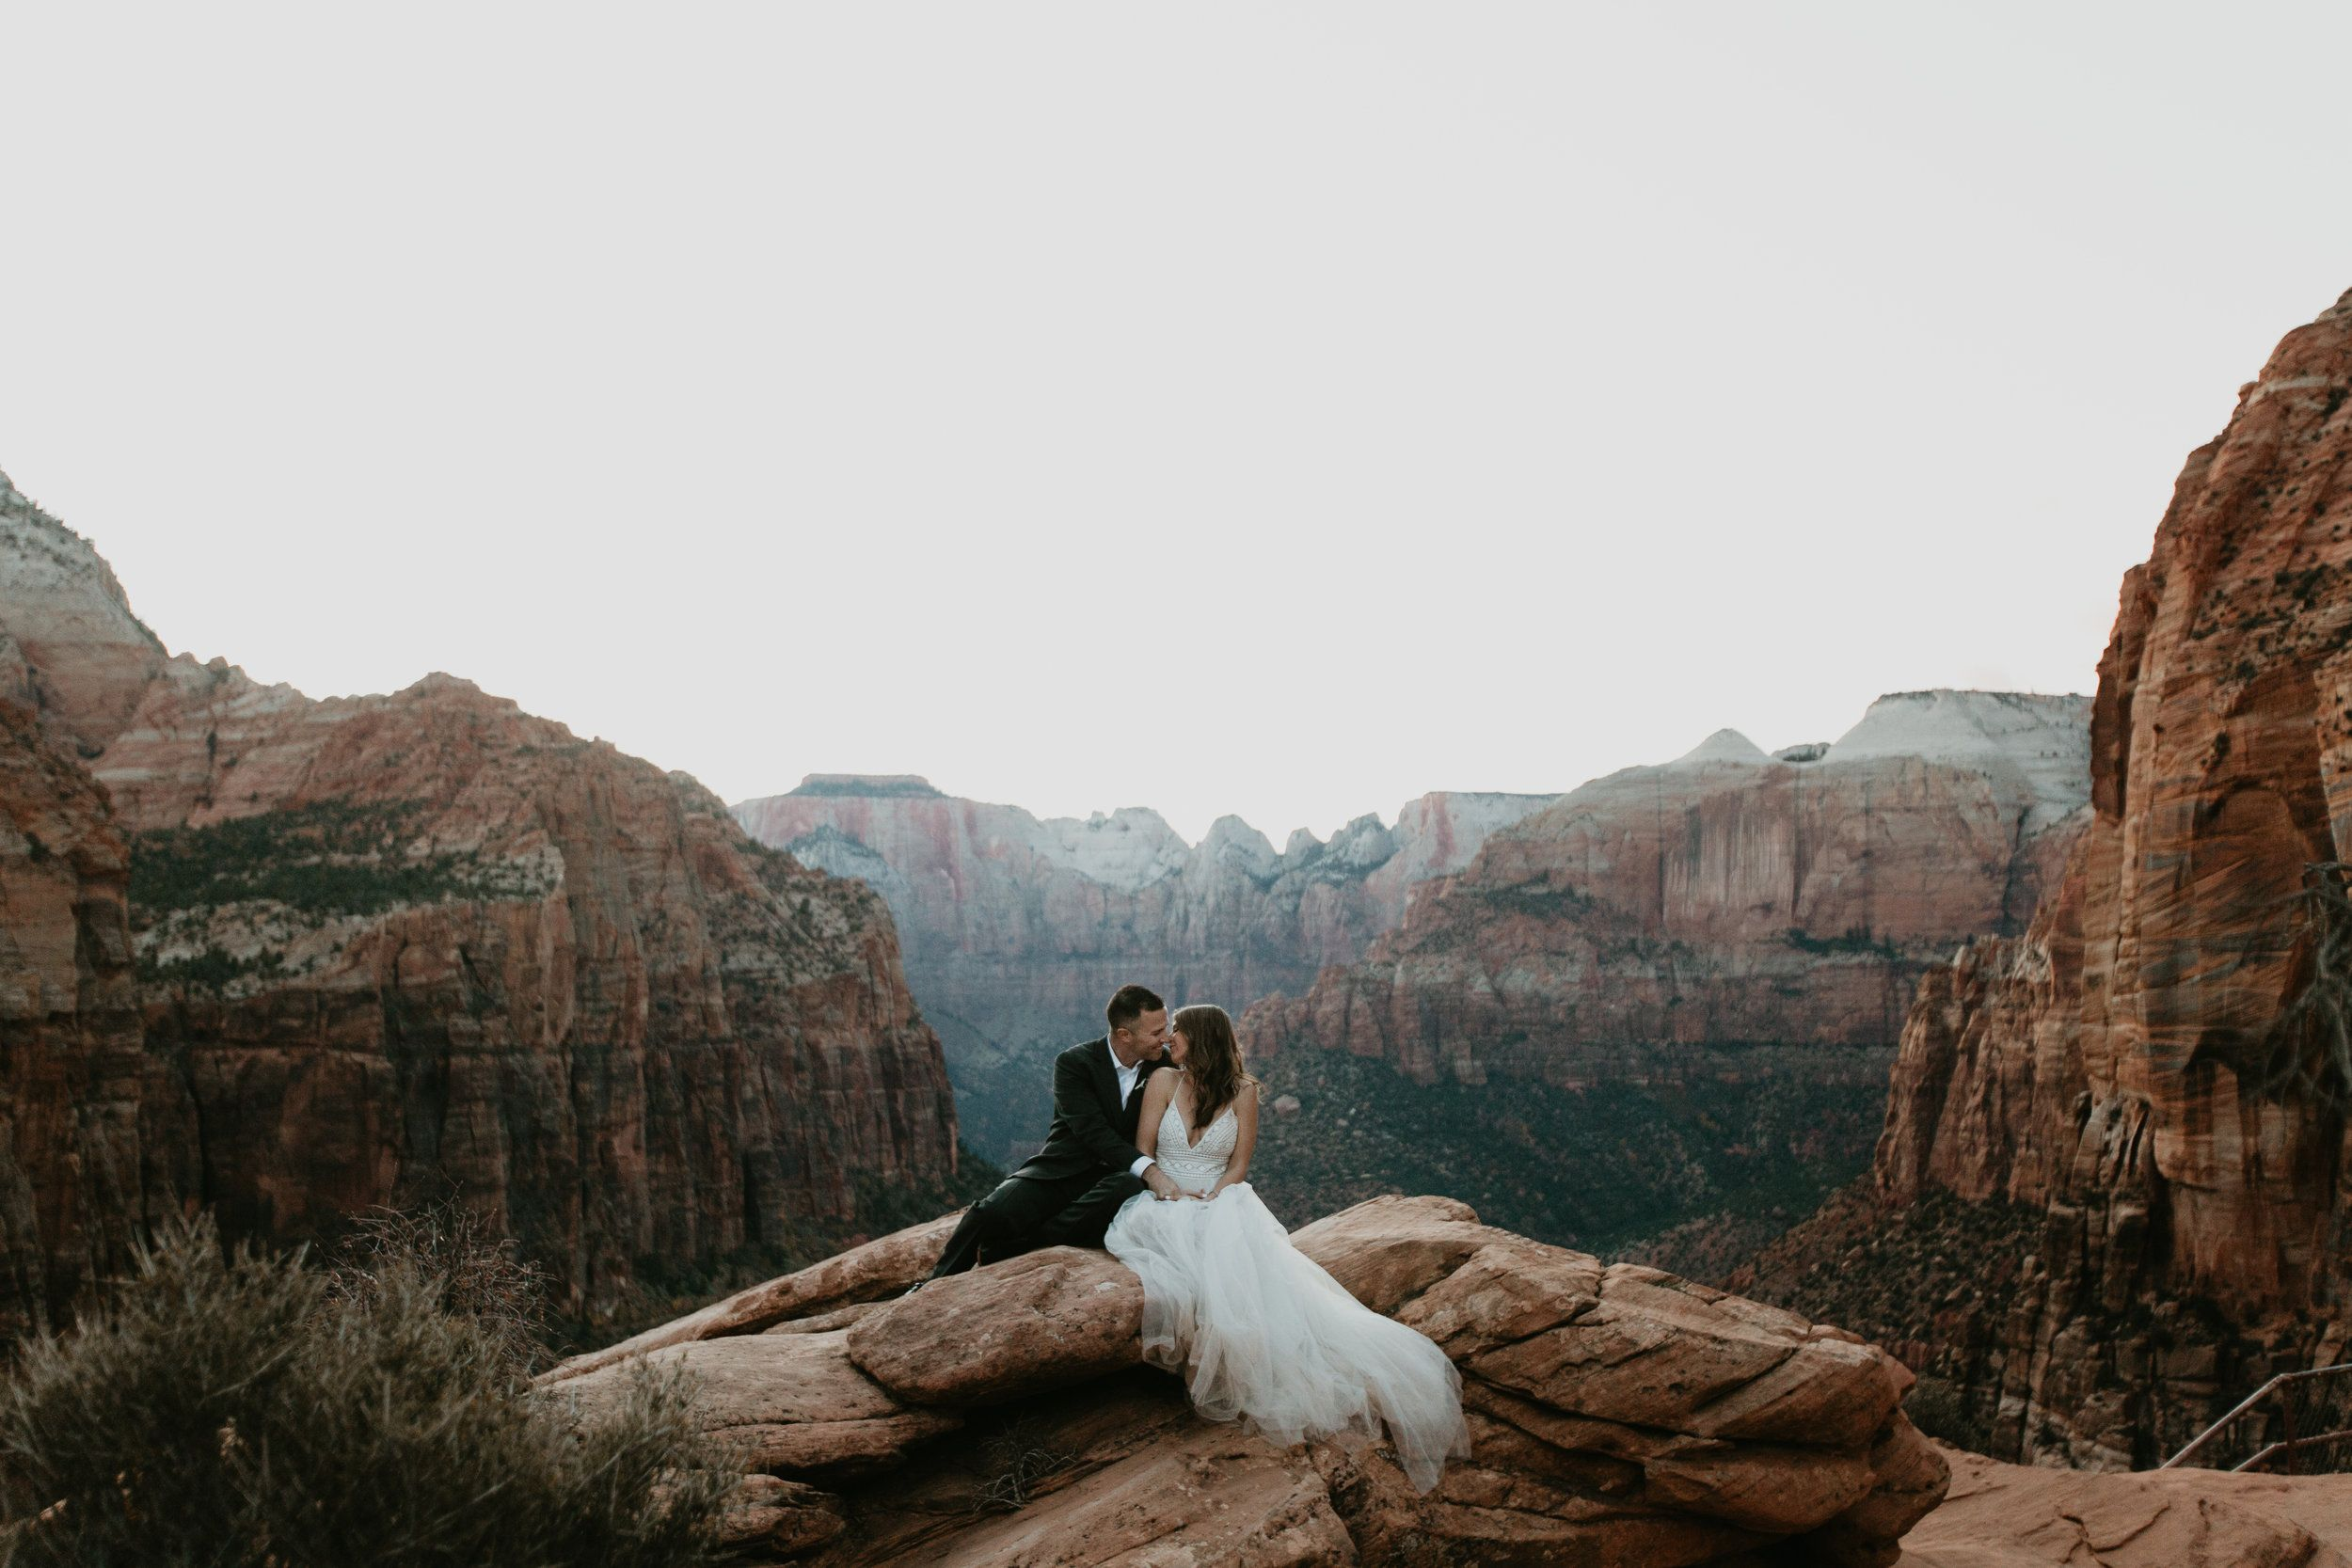 Elopement In Zion National Park In Southern Utah Adventure Wedding Photography Nicole Daacke Photography Adventure Elopements Intimate Destination Weddi Adventure Wedding Photography Utah Wedding Photography Adventure Wedding